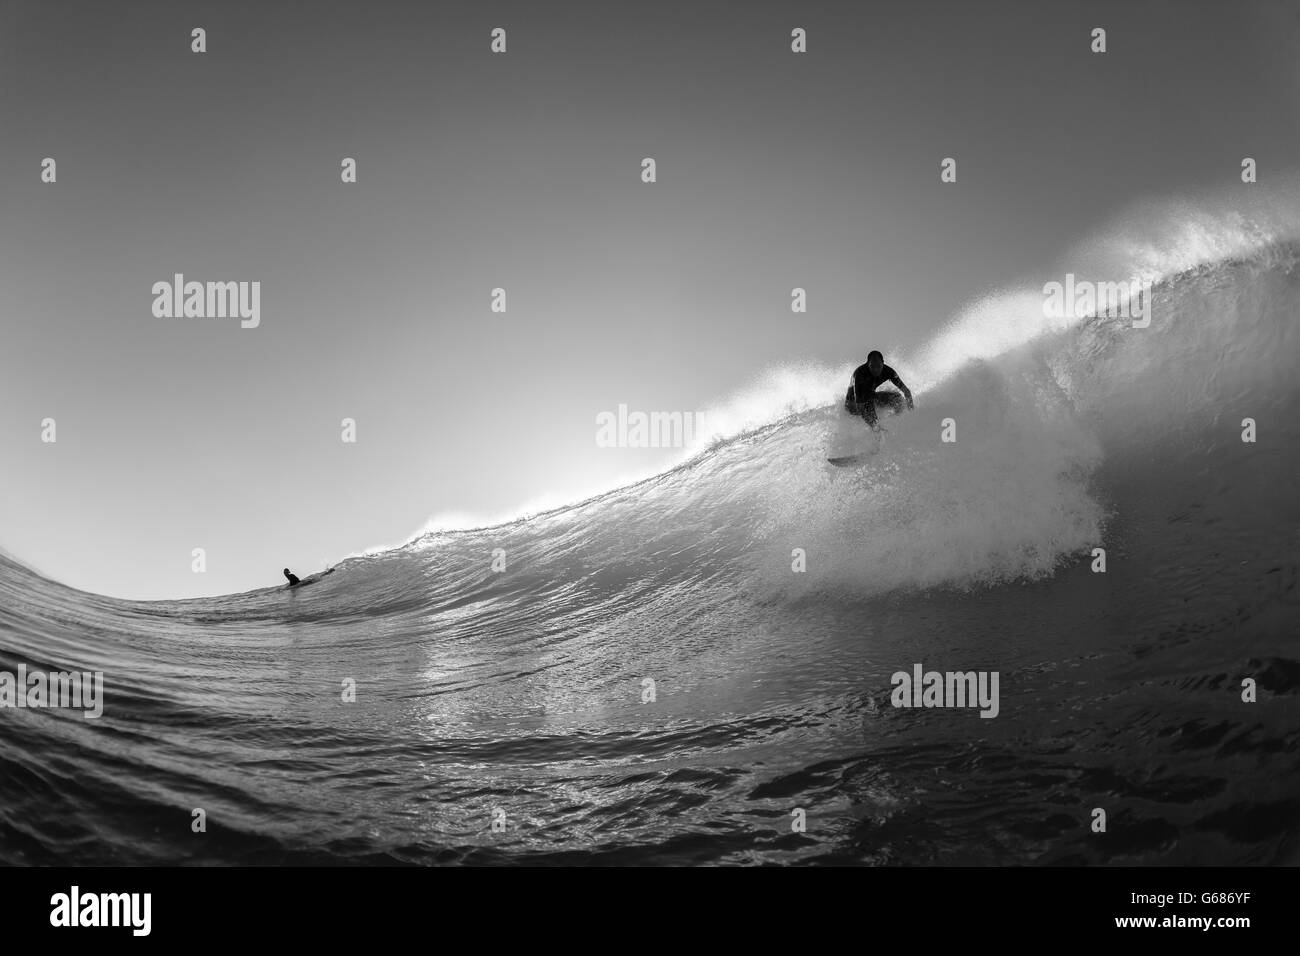 Surfer unidentified silhouetted surfing water action closeup swimming photo. - Stock Image